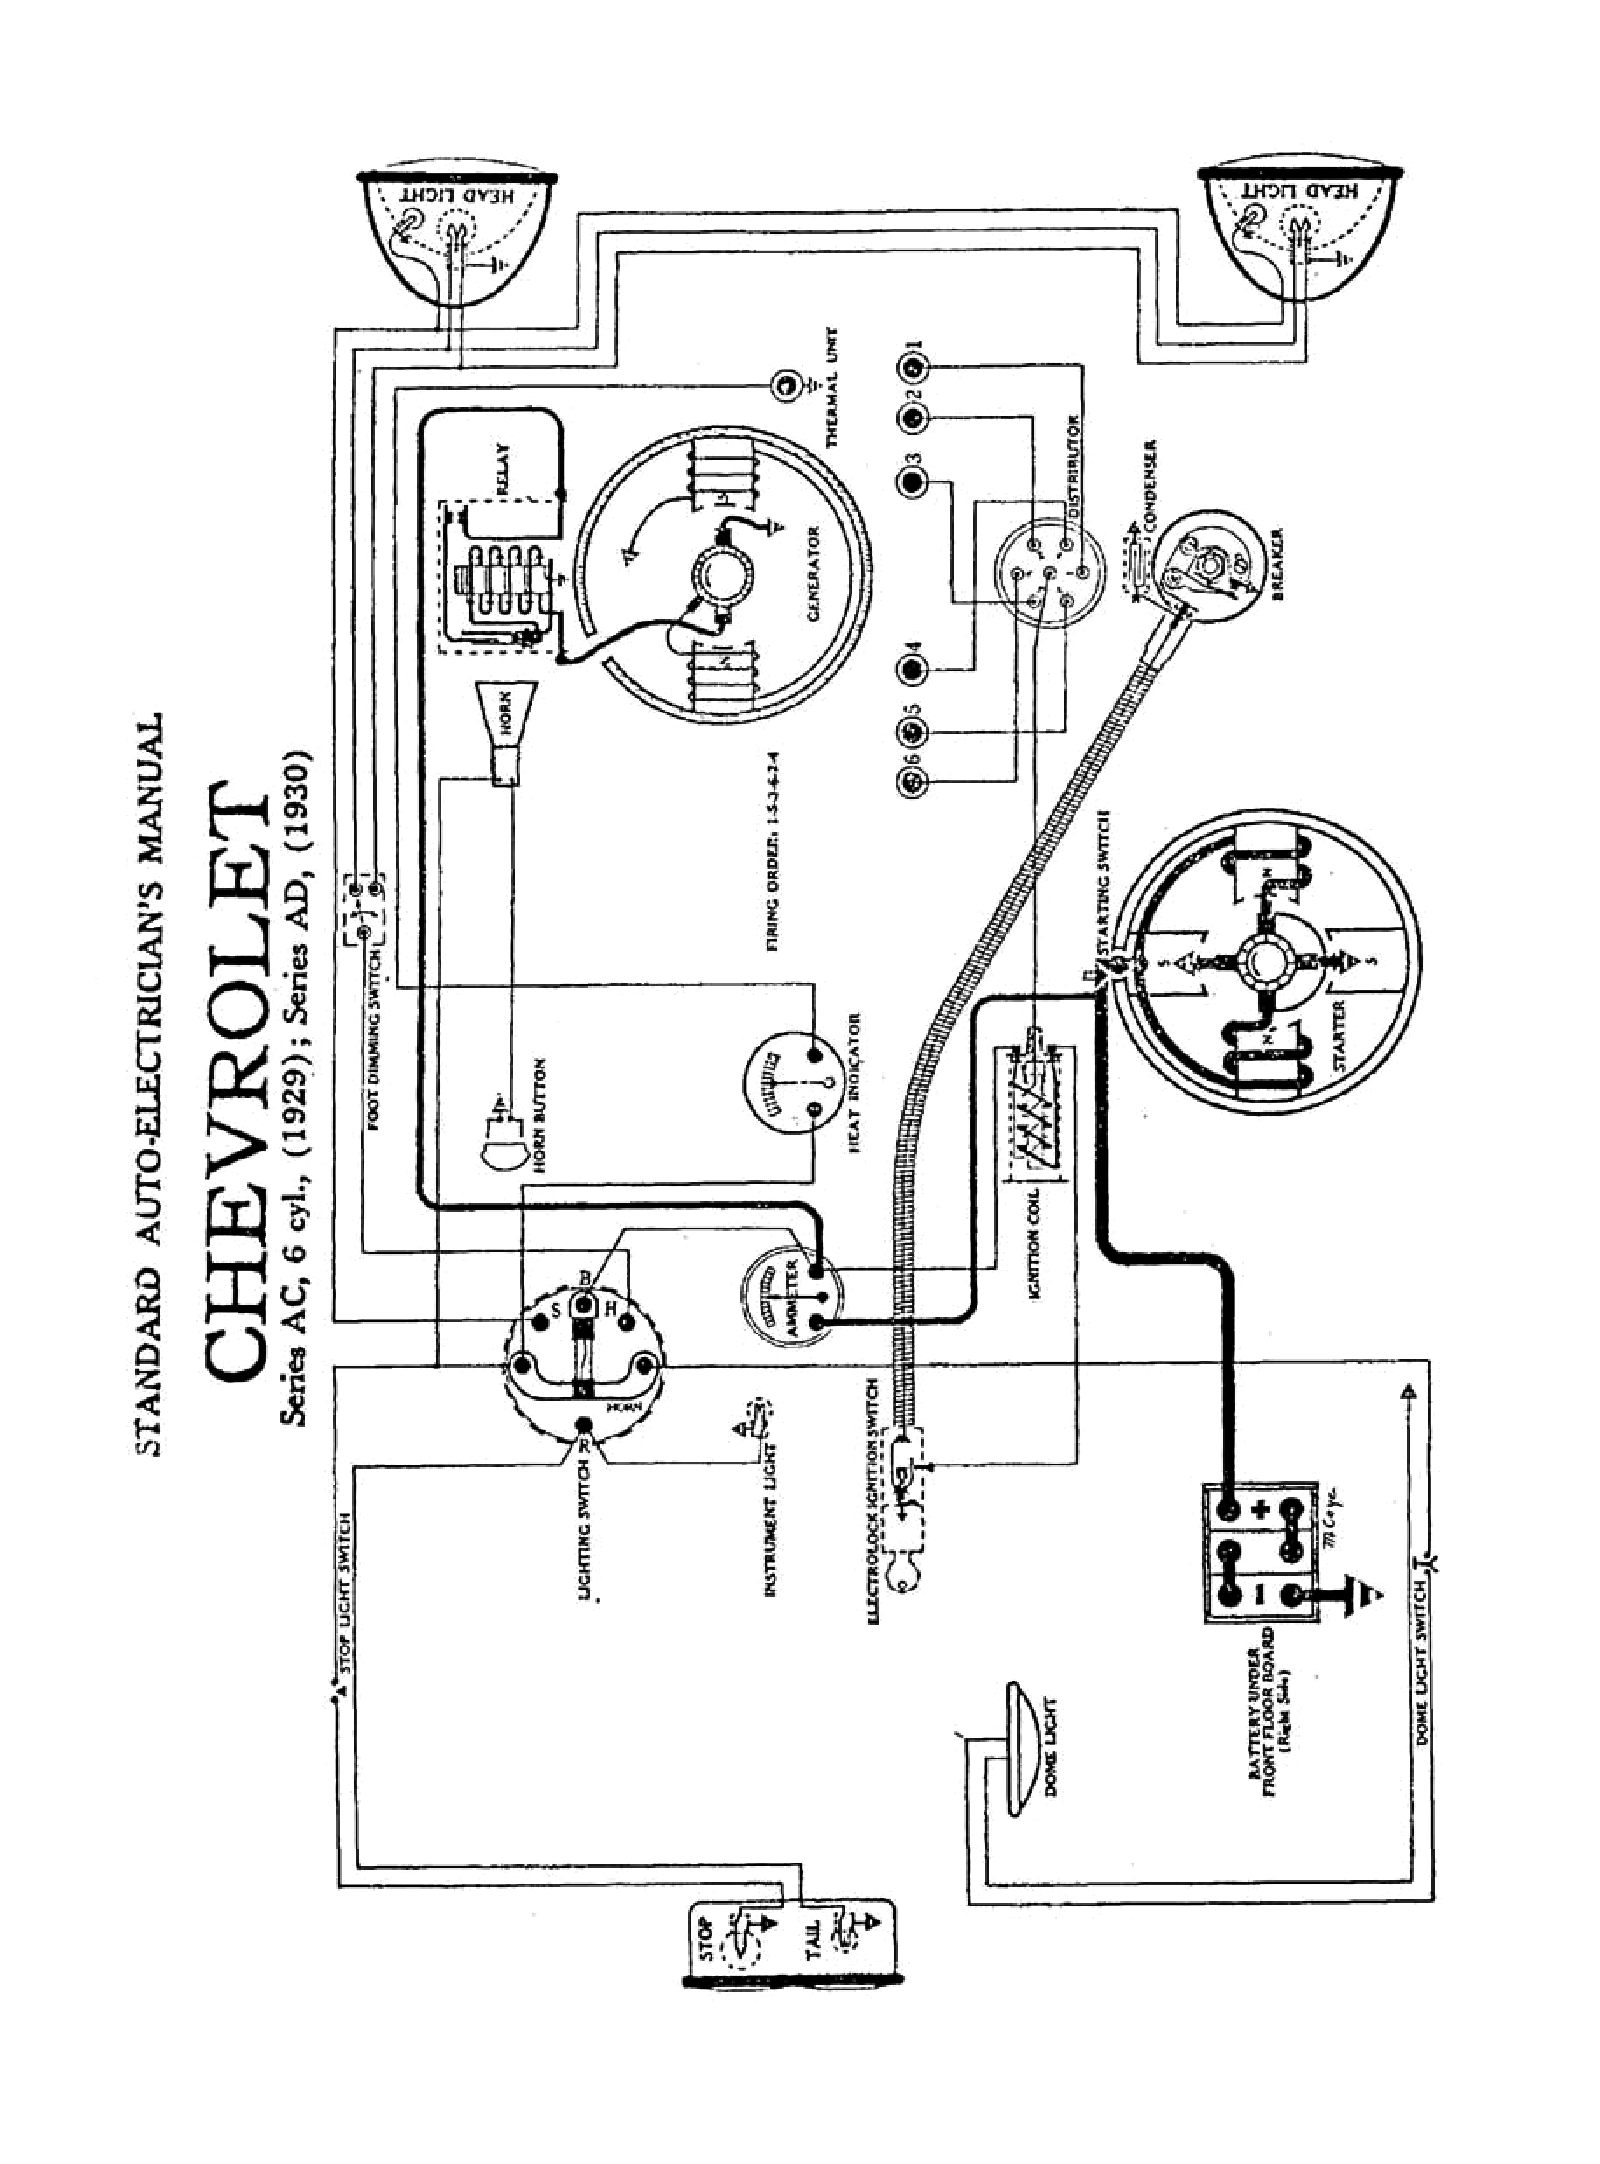 chevy wiring diagrams rh chevy oldcarmanualproject com 1951 Ford Pickup Wiring Diagram Ford Truck Trailer Wiring Diagram